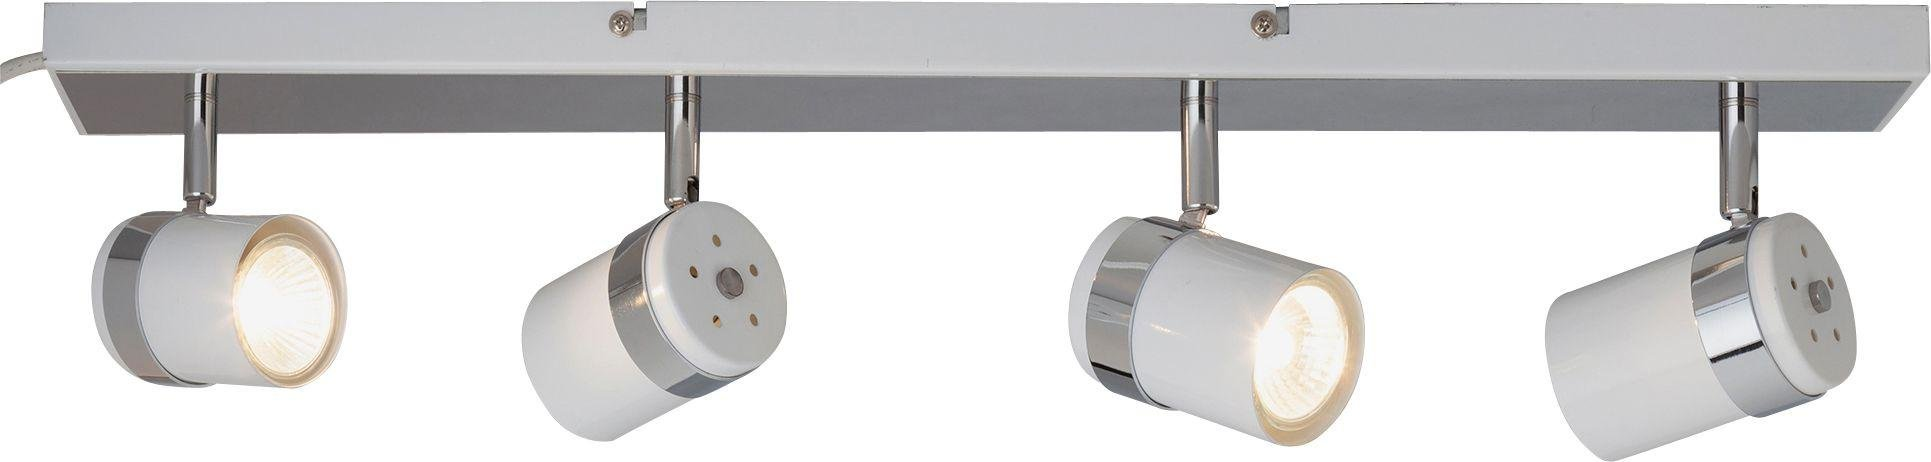 Argos Home Shiro 4 Spotlight Bar - White & Chrome